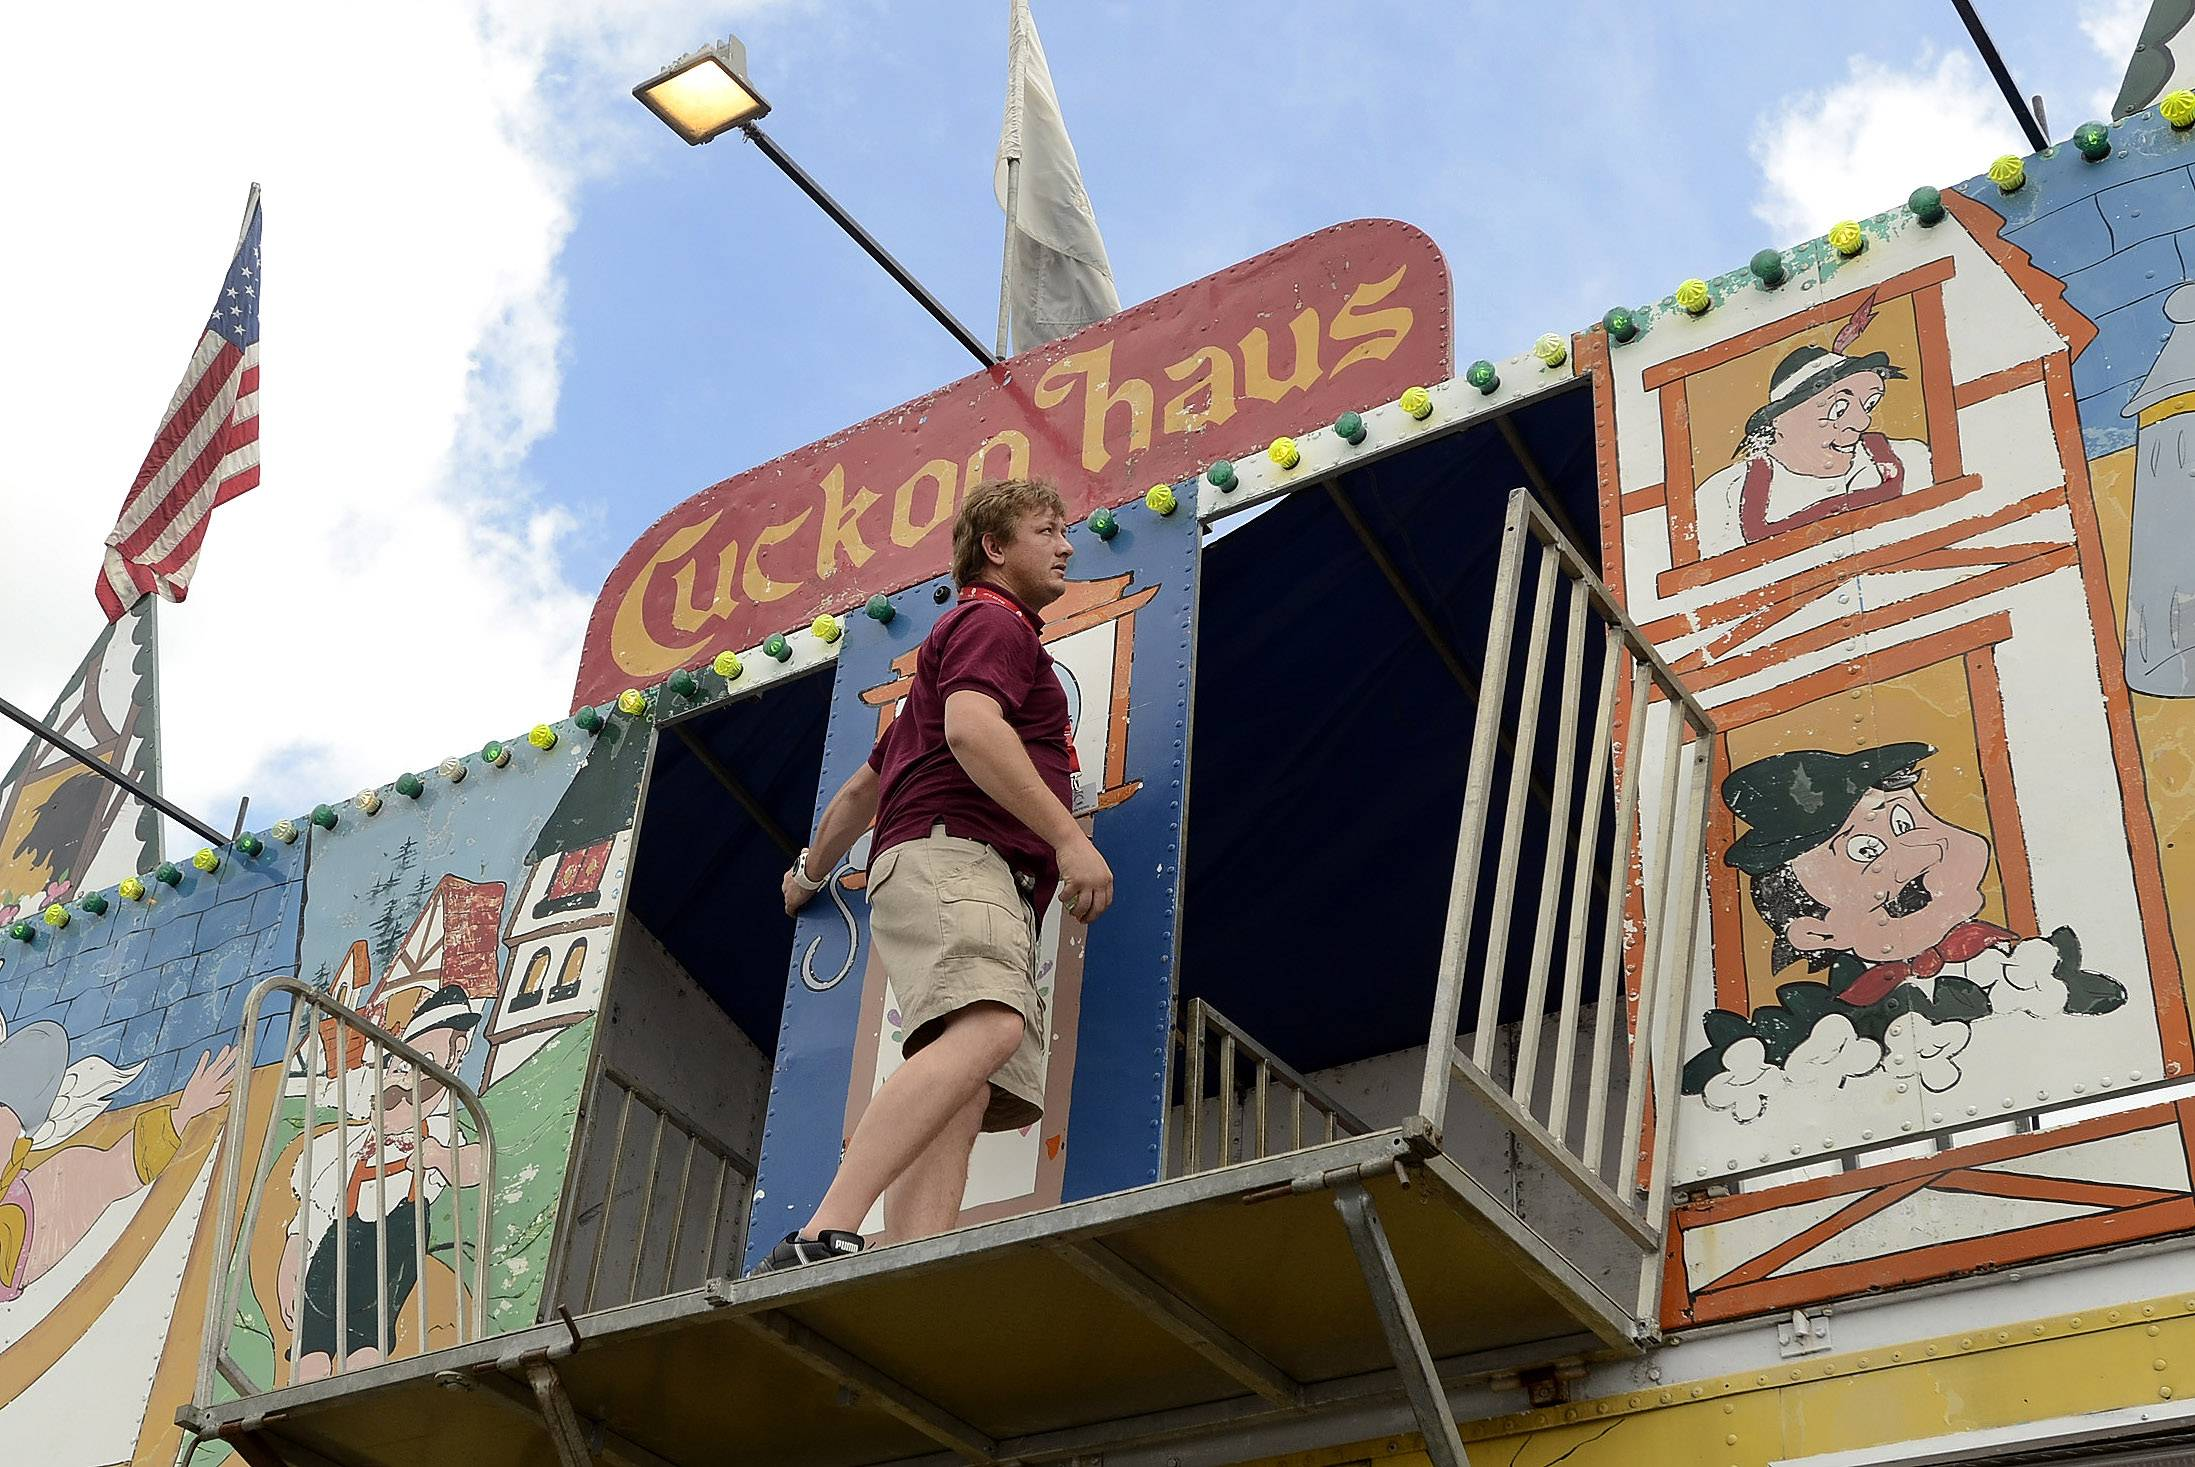 J.P. Coetzer prepares the Cuckoo Haus attraction ahead of Thursday's opening of the Mount Prospect Jaycees Memorial Day Carnival. The event is returning from a three-year hiatus.